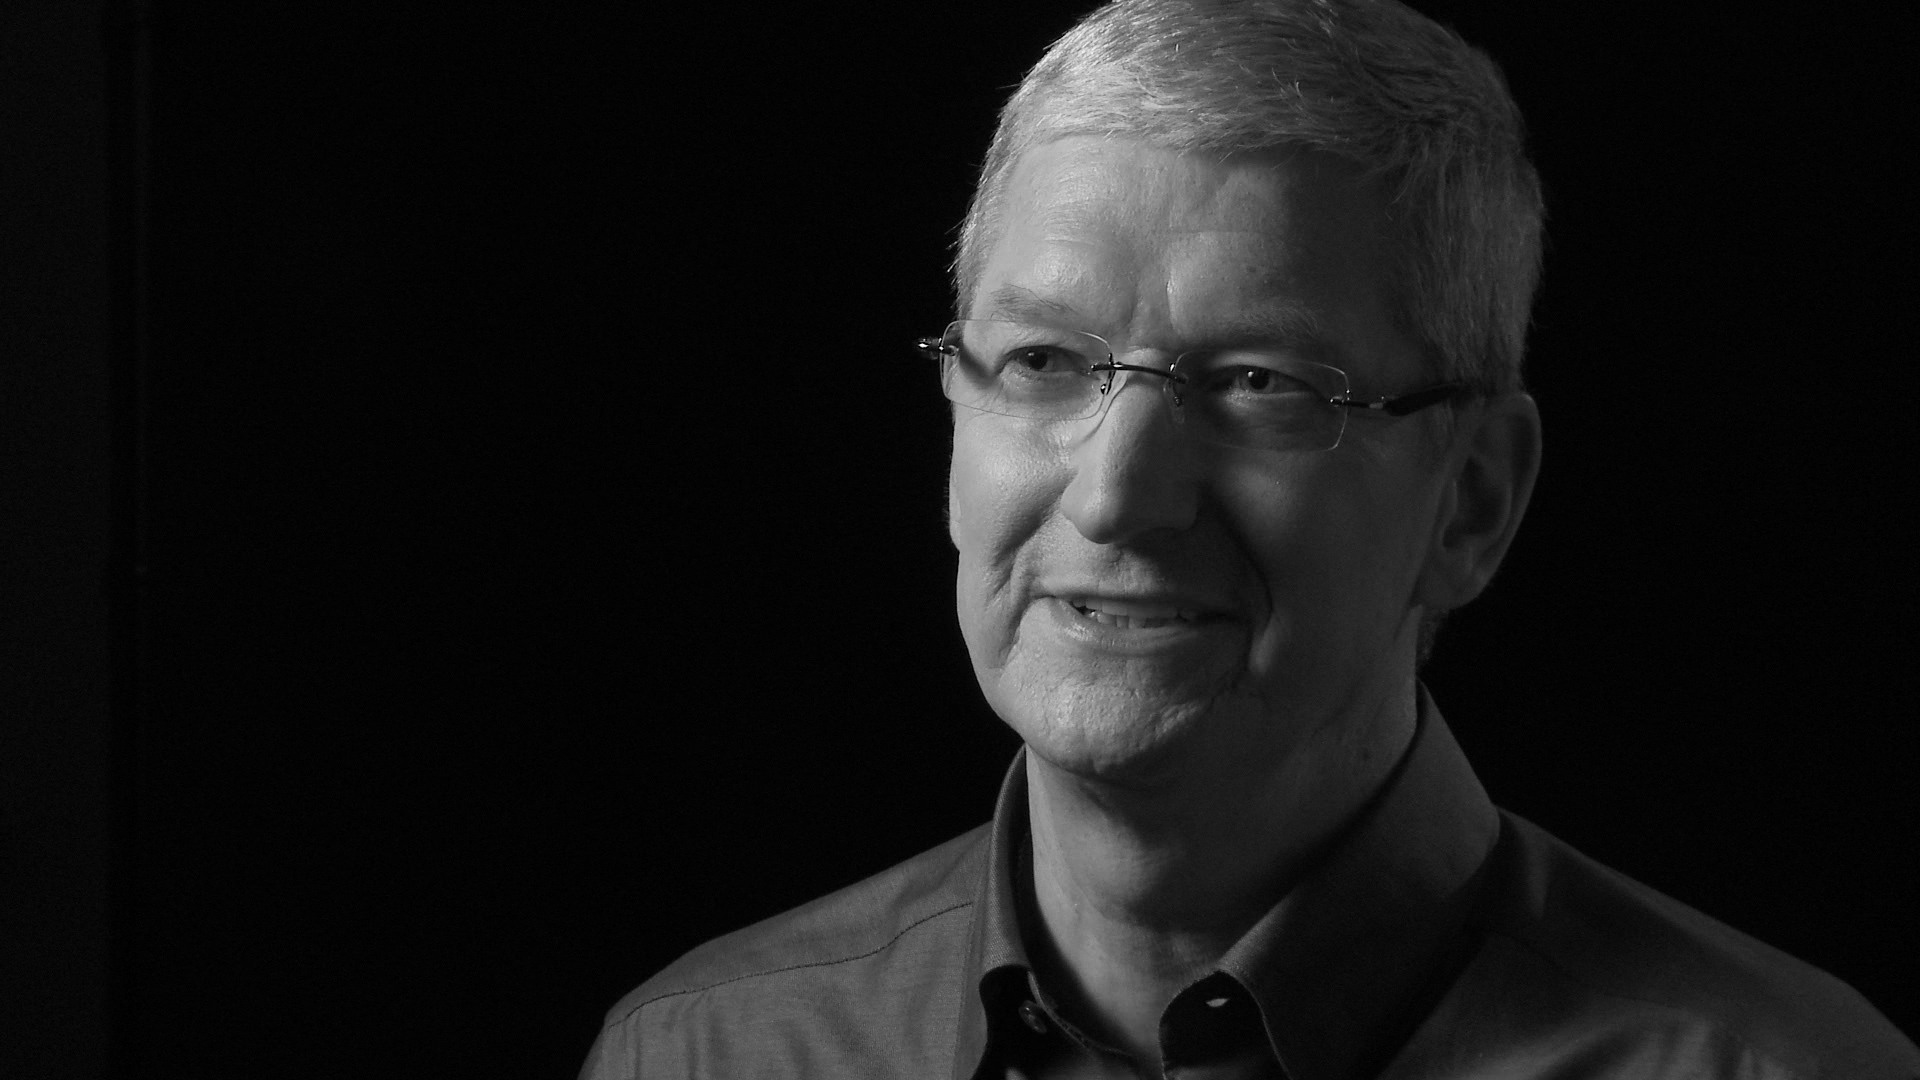 Tim Cook says Steve Jobs was 'heat shield' for Apple